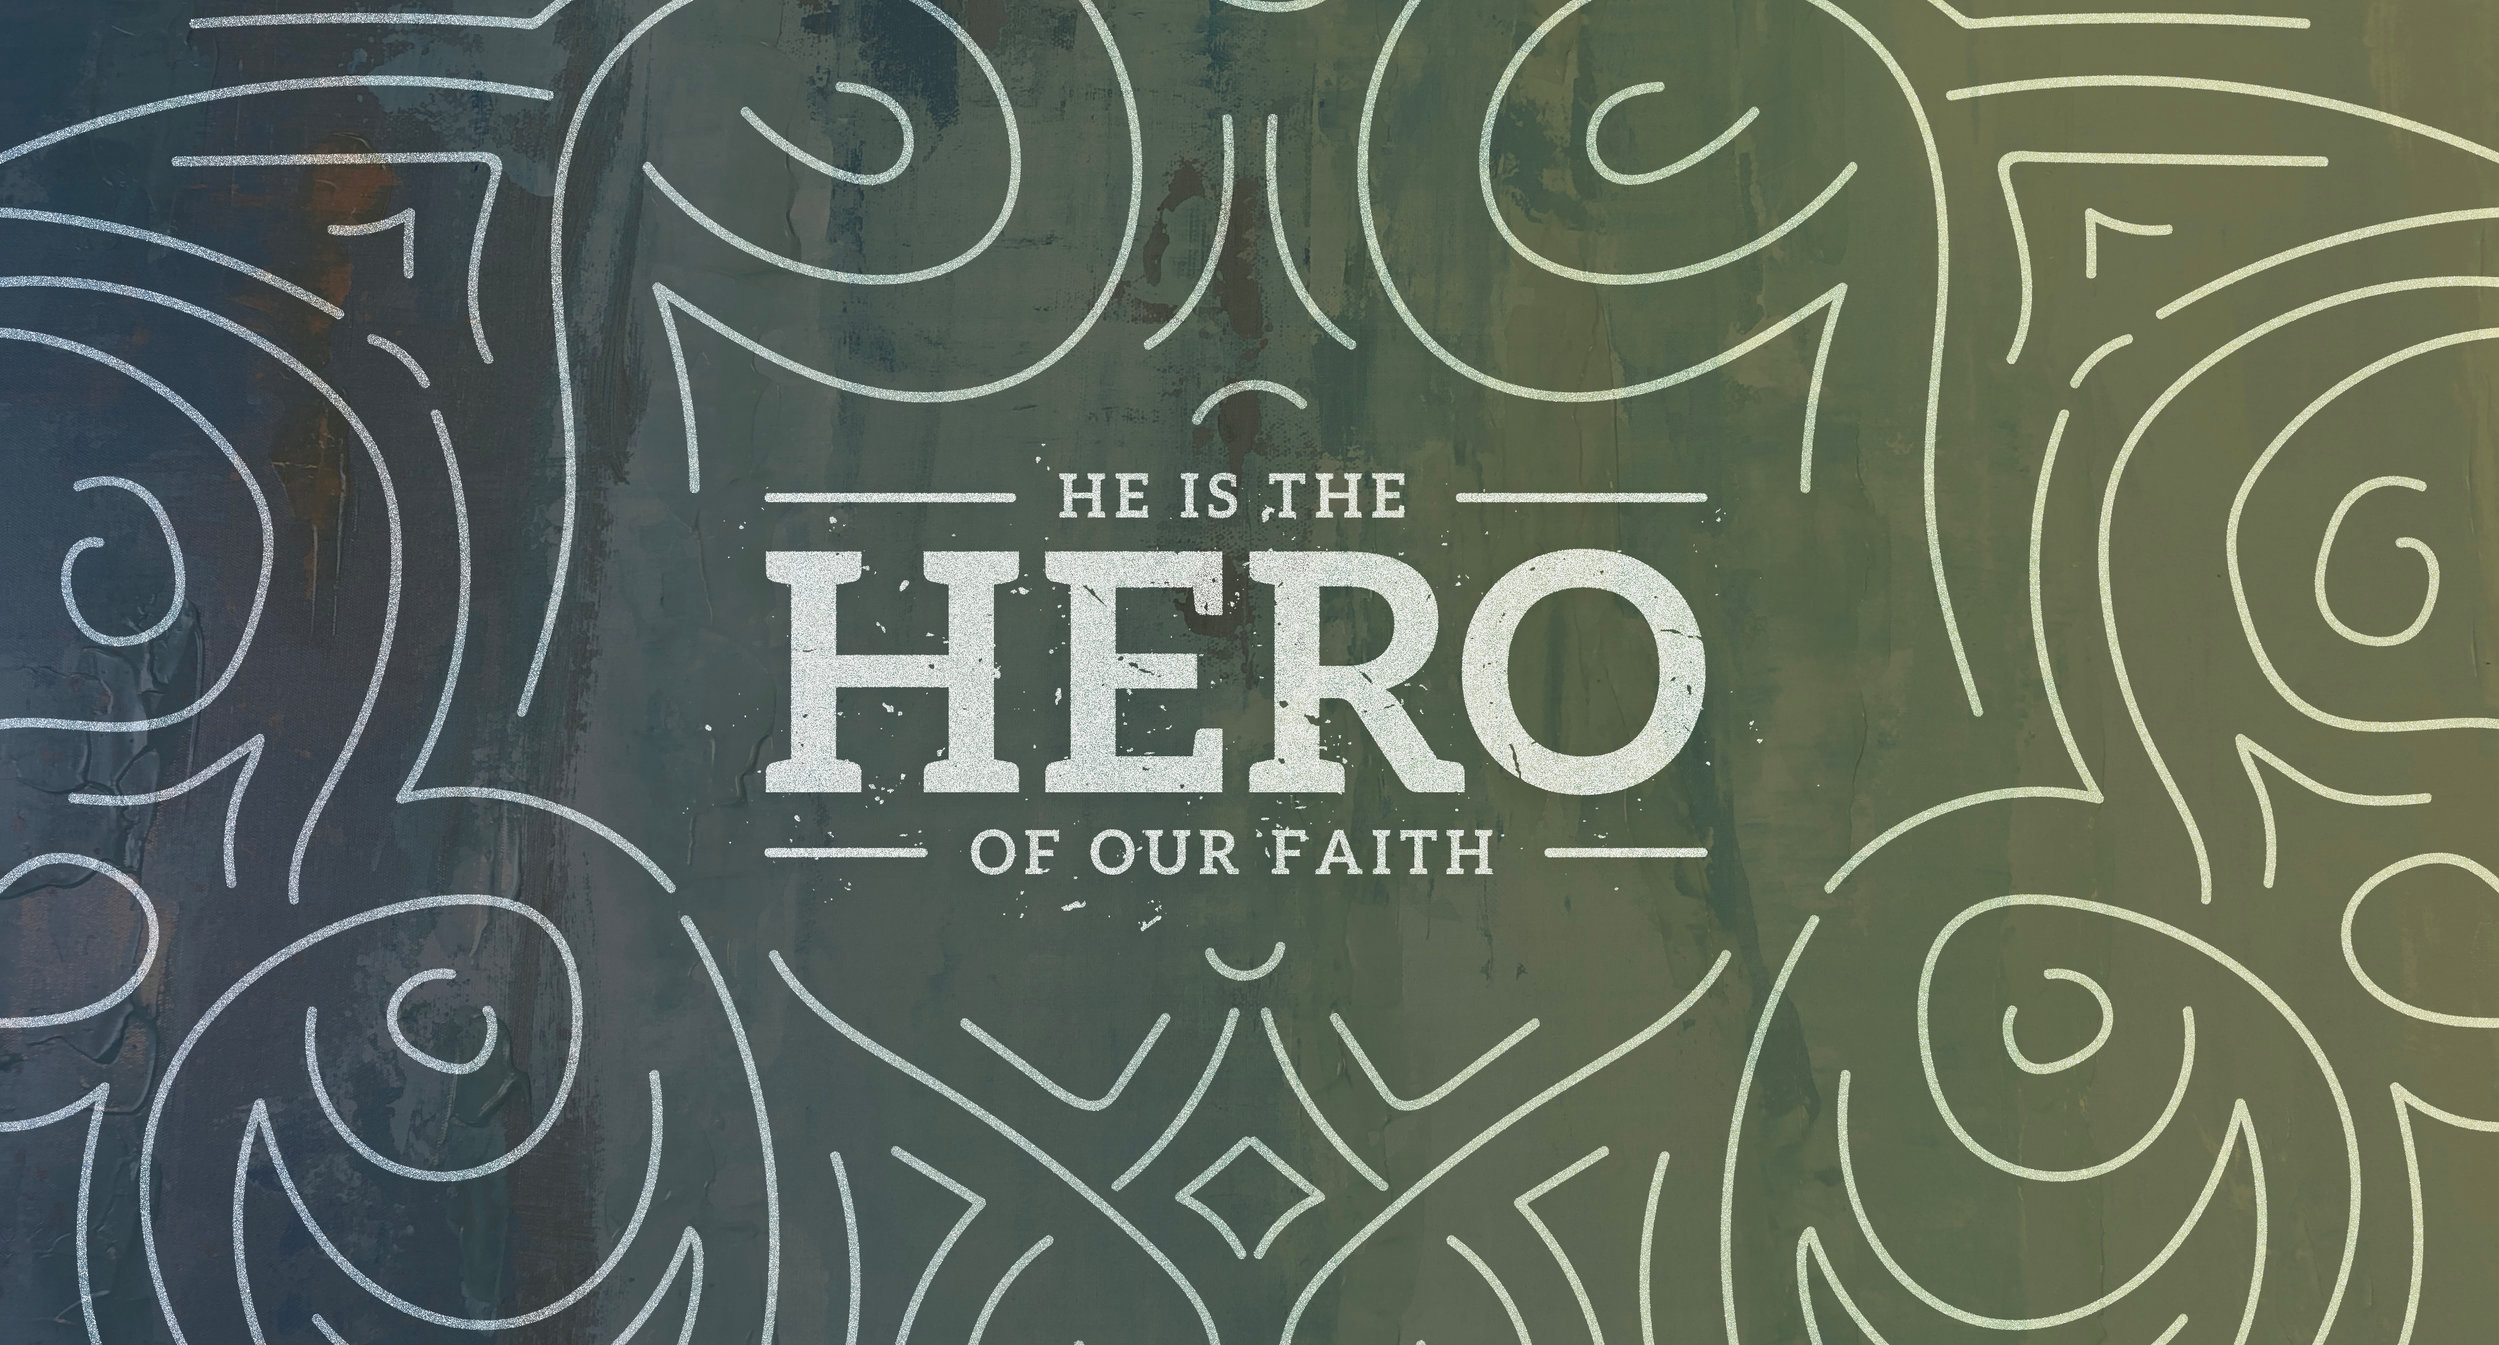 Join us this summer in our new sermon series,  Hero ! We'll explore Hebrews 11 and the amazing stories of seven Old Testament heroes of the faith. These stories all point to Jesus as the true Hero and will encourage us to persevere in our faith today.